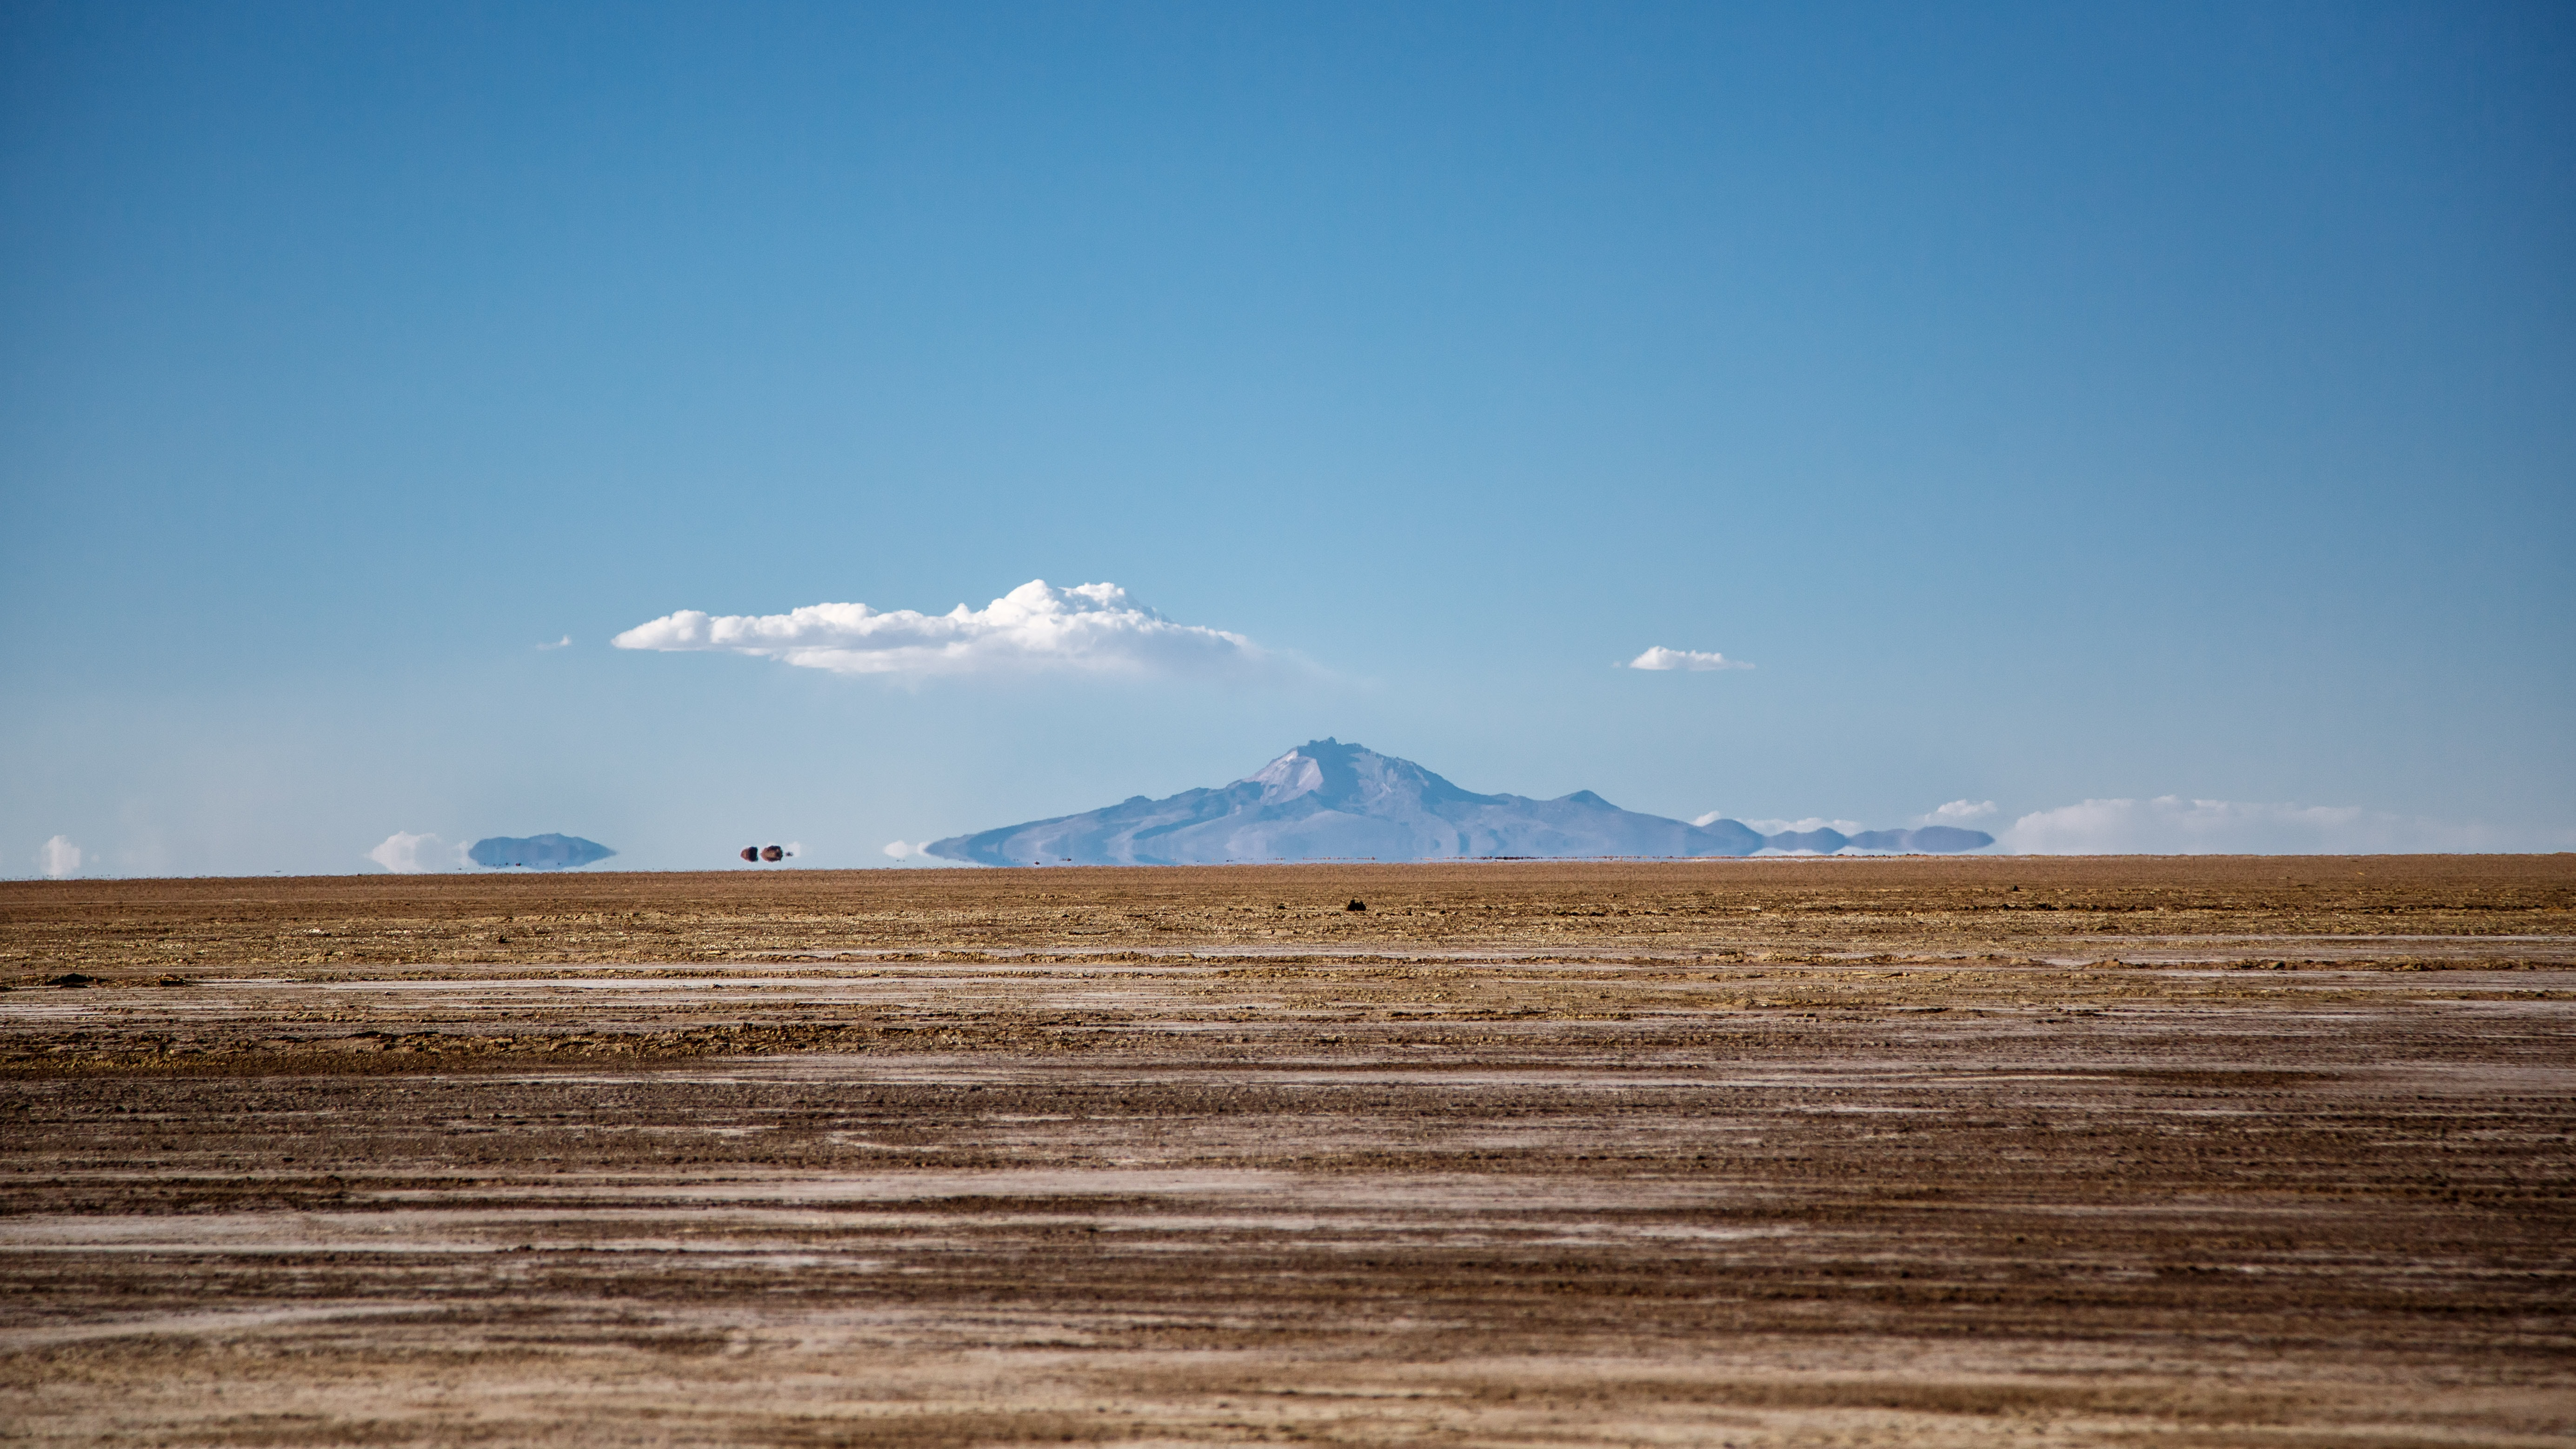 mountain across brown desert